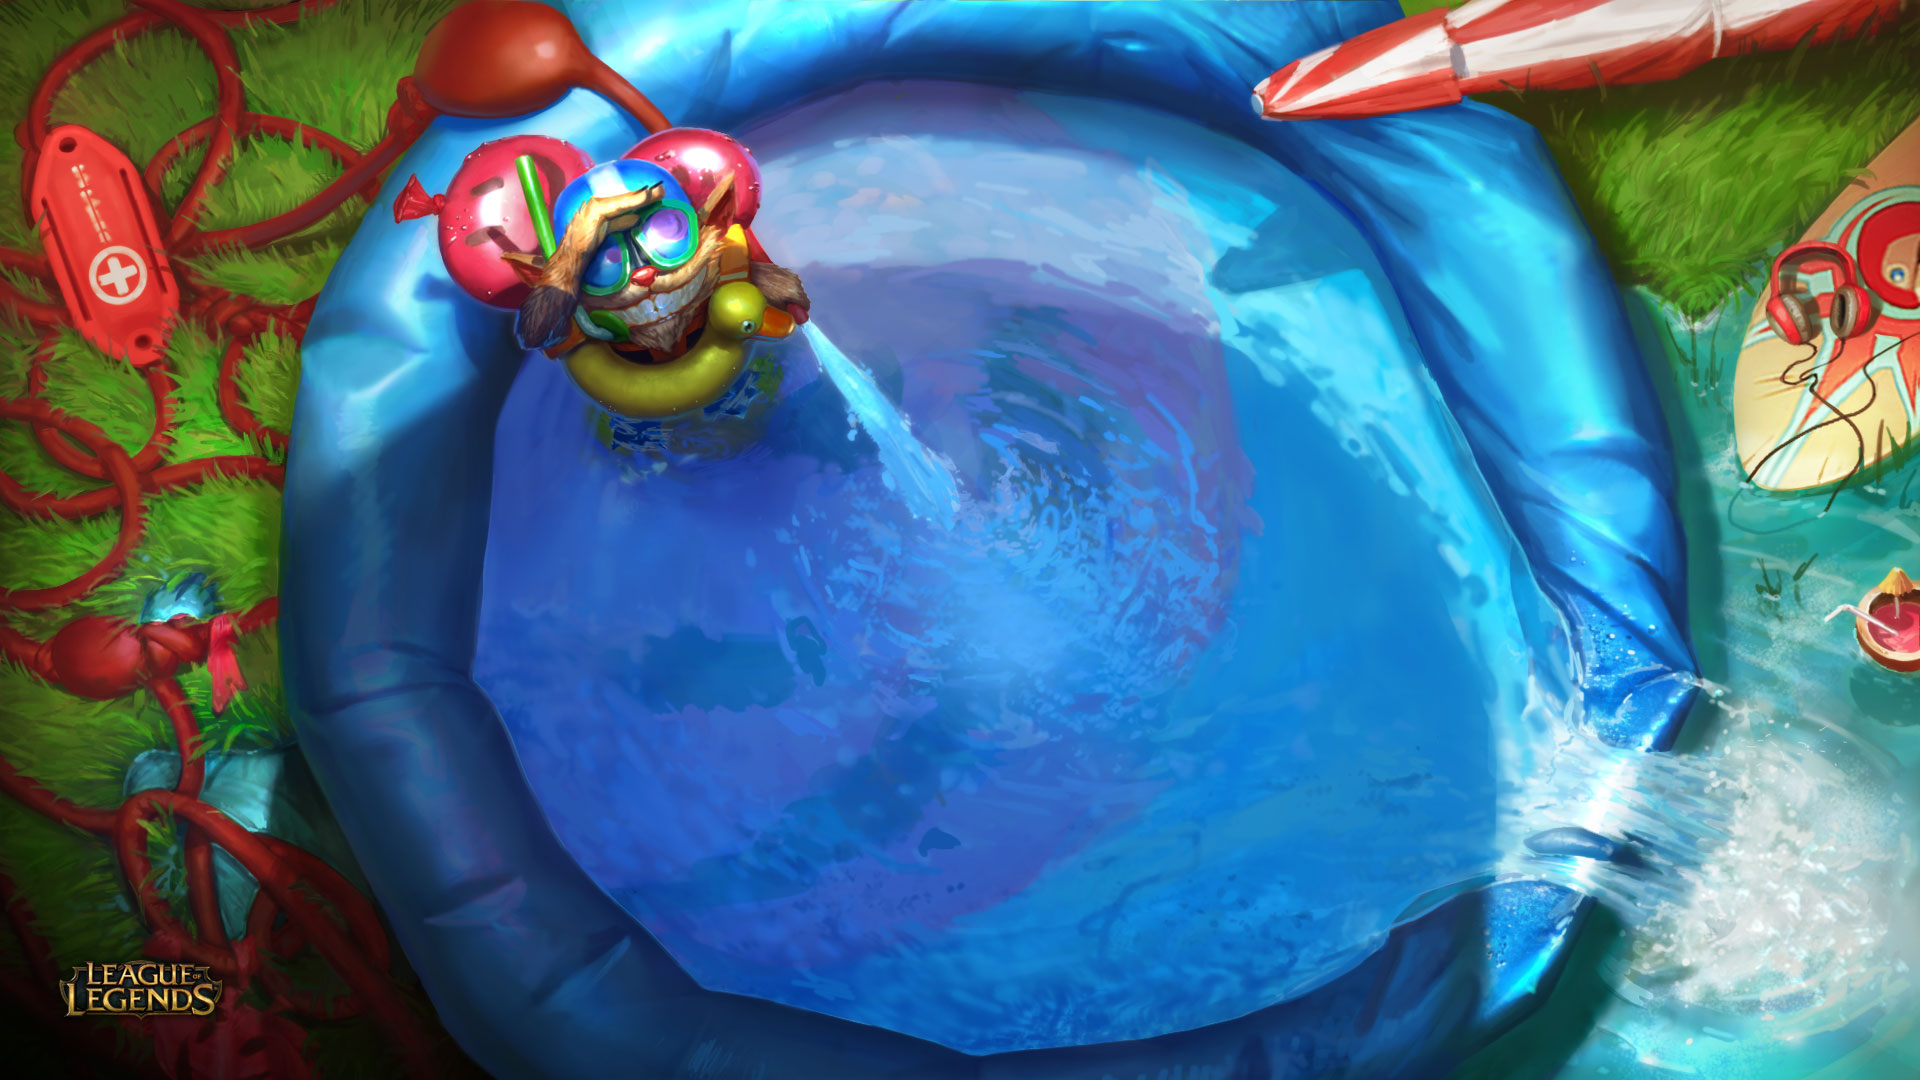 Game wallpaper league of legends yasuo wallpapers iphone with high - Ziggs Pool Party Lol 4b Wallpaper Hd